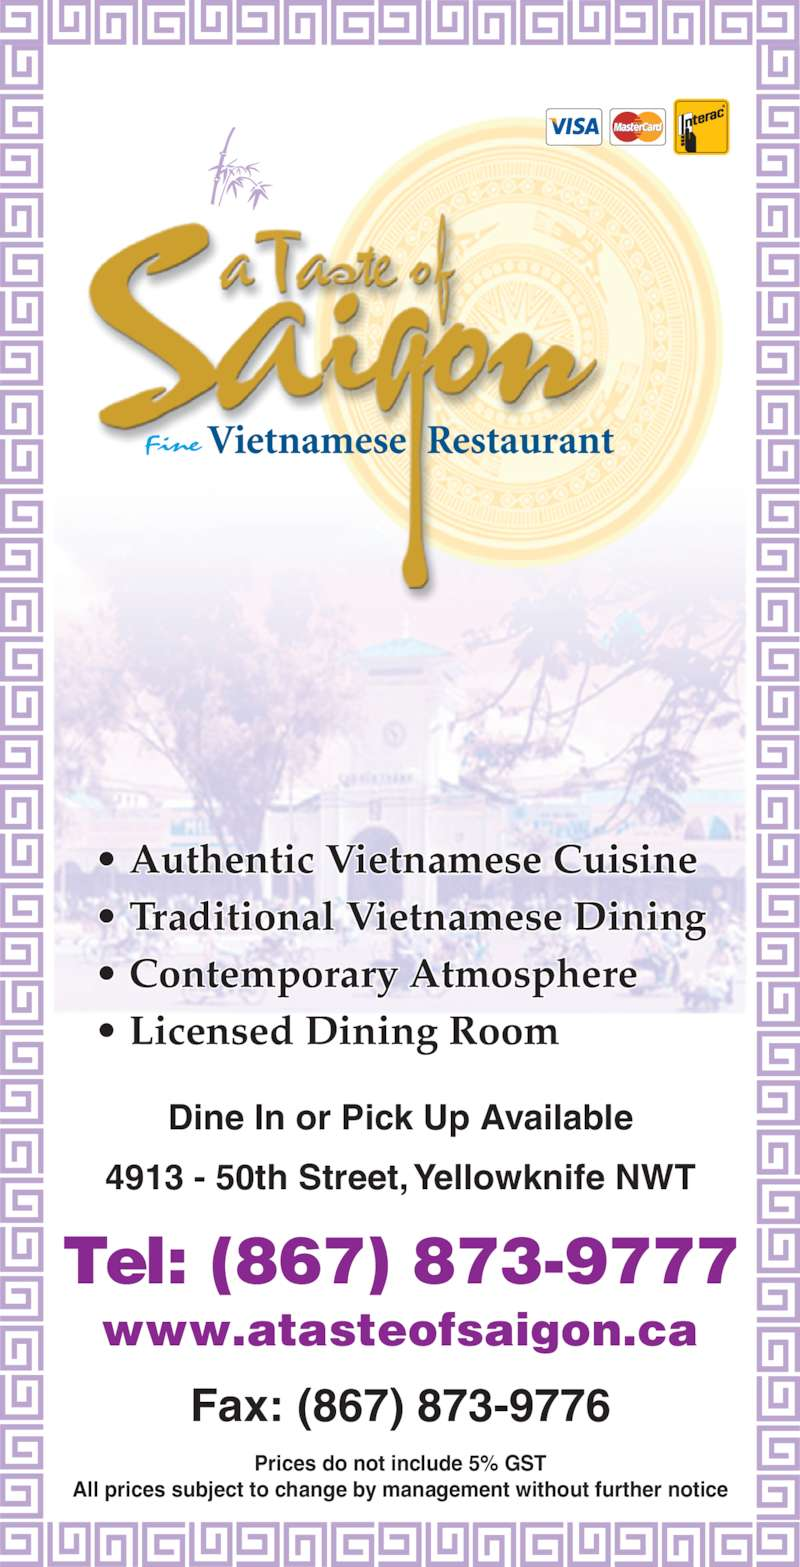 A Taste Of Saigon (8678739777) - Display Ad - • Authentic Vietnamese Cuisine • Traditional Vietnamese Dining • Contemporary Atmosphere • Licensed Dining Room 4913 - 50th Street, Yellowknife NWT Dine In or Pick Up Available Tel: (867) 873-9777 Fax: (867) 873-9776 www.atasteofsaigon.ca Prices do not include 5% GST All prices subject to change by management without further notice